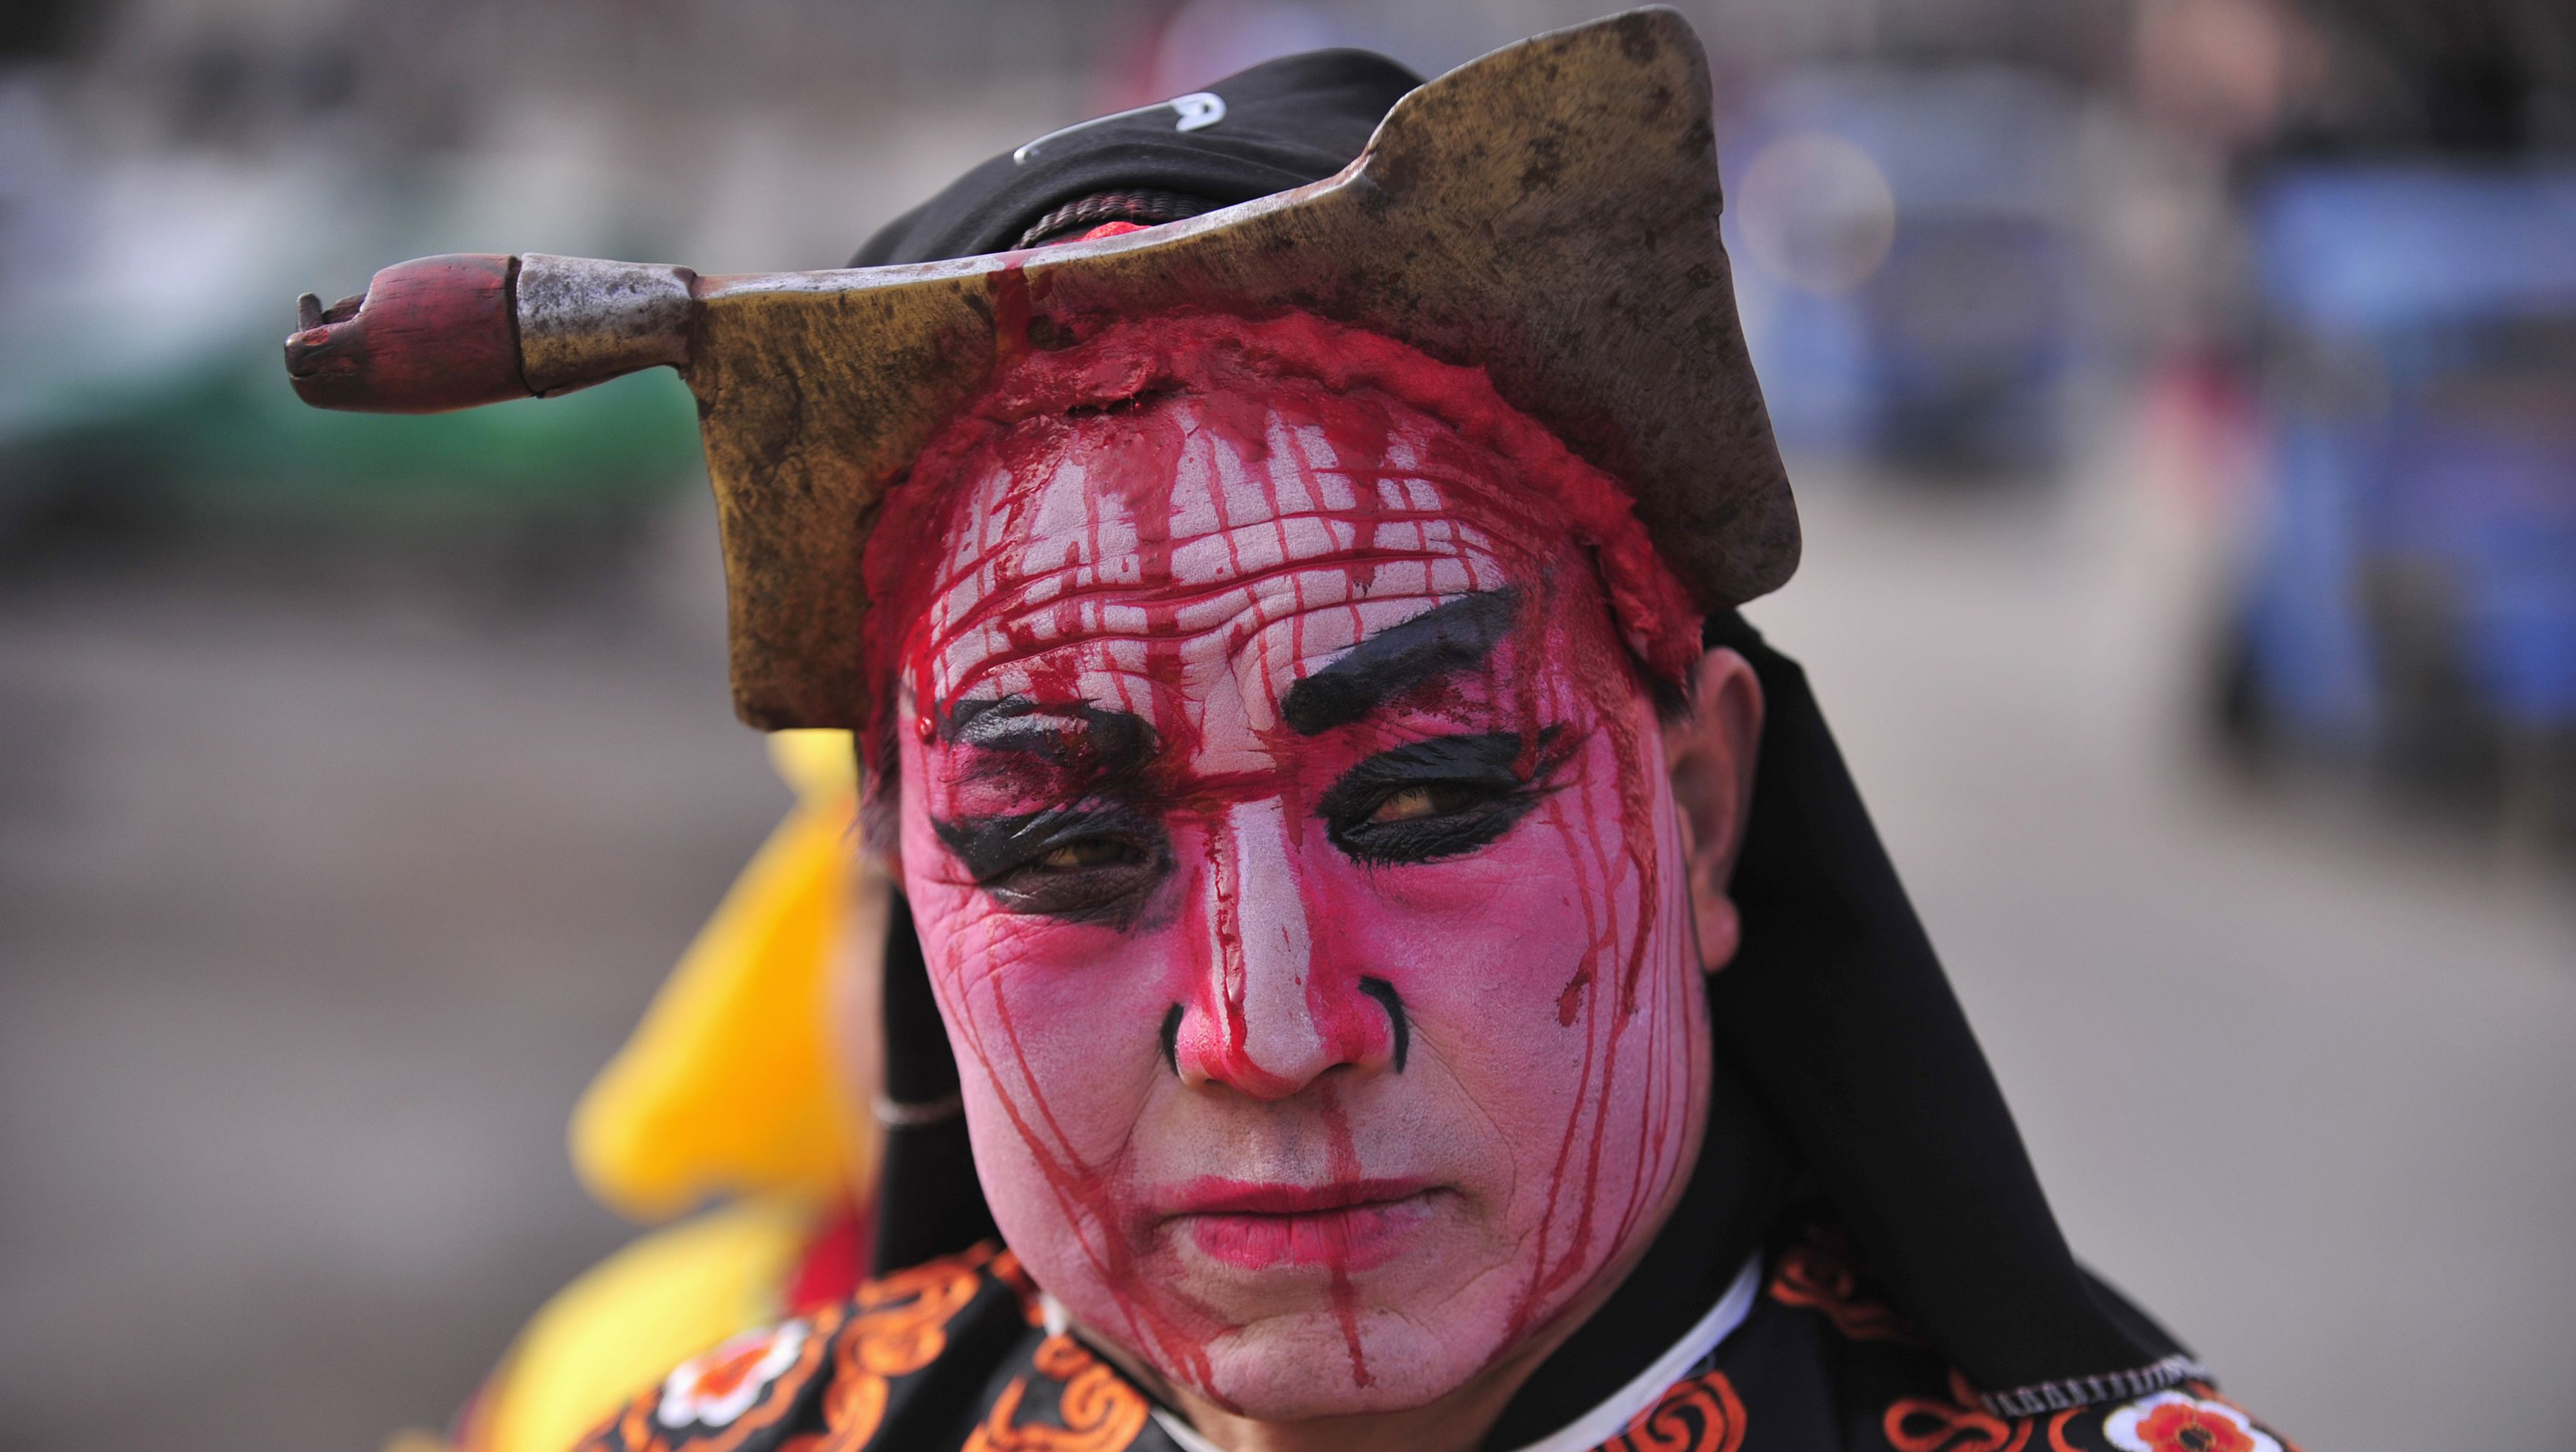 """A folk performer with his face painted to appear as knife cuts, and wearing a knife prop on his head, takes part in a """"Blood Shehuo"""" parade to celebrate the Lantern Festival on the last day of the Chinese Lunar New Year celebrations at Chisha village in Baoji, Shaanxi province February 6, 2012. """"Shehuo"""" is common name of Chinese traditional activities consisting of folk performances in Northern China. The """"Blood Shehuo"""" performers wear facial makeup to appear as being pierced by objects including axes, scissors and knives, featuring scenes of horror in traditional stories like Water Margin. This activity is held only in Baoji county and performed only during leap years. REUTERS/Rooney Chen"""